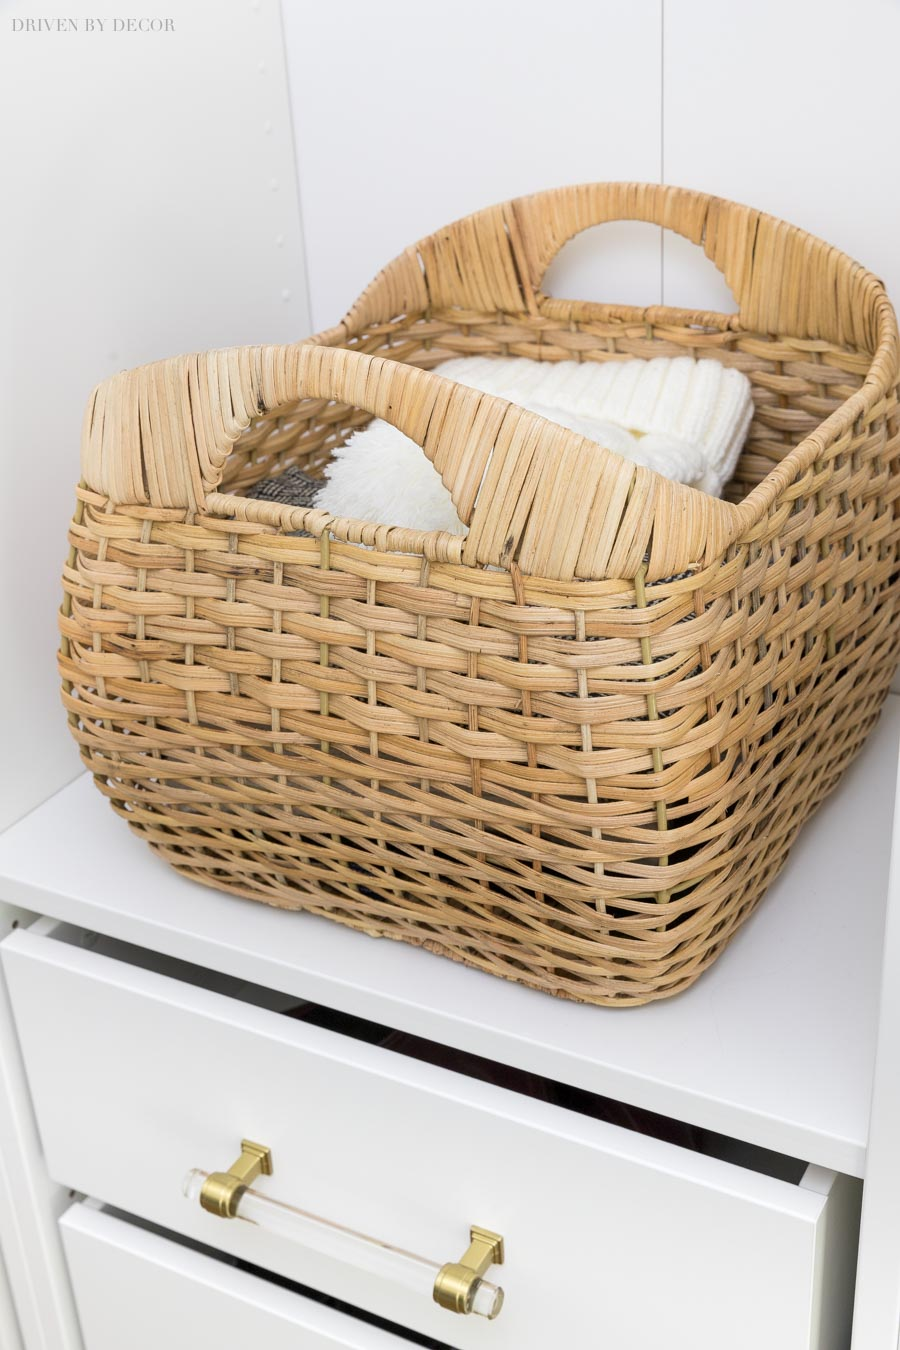 Pretty woven storage baskets for hats, scarves, and gloves in our coat closet.